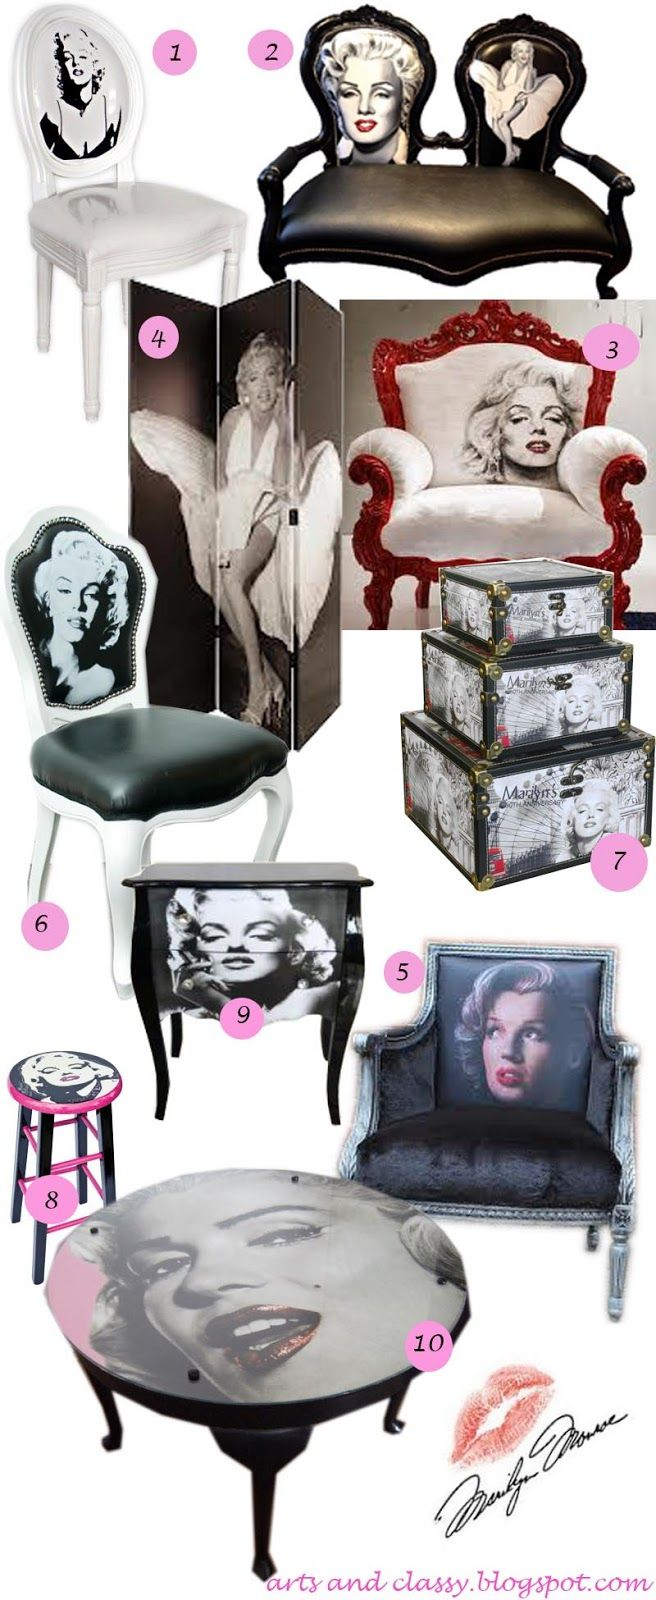 Marilyn Monroe Baby Bedroom: Merry Marilyn Art & $25 Visa Gift Card Holiday Free